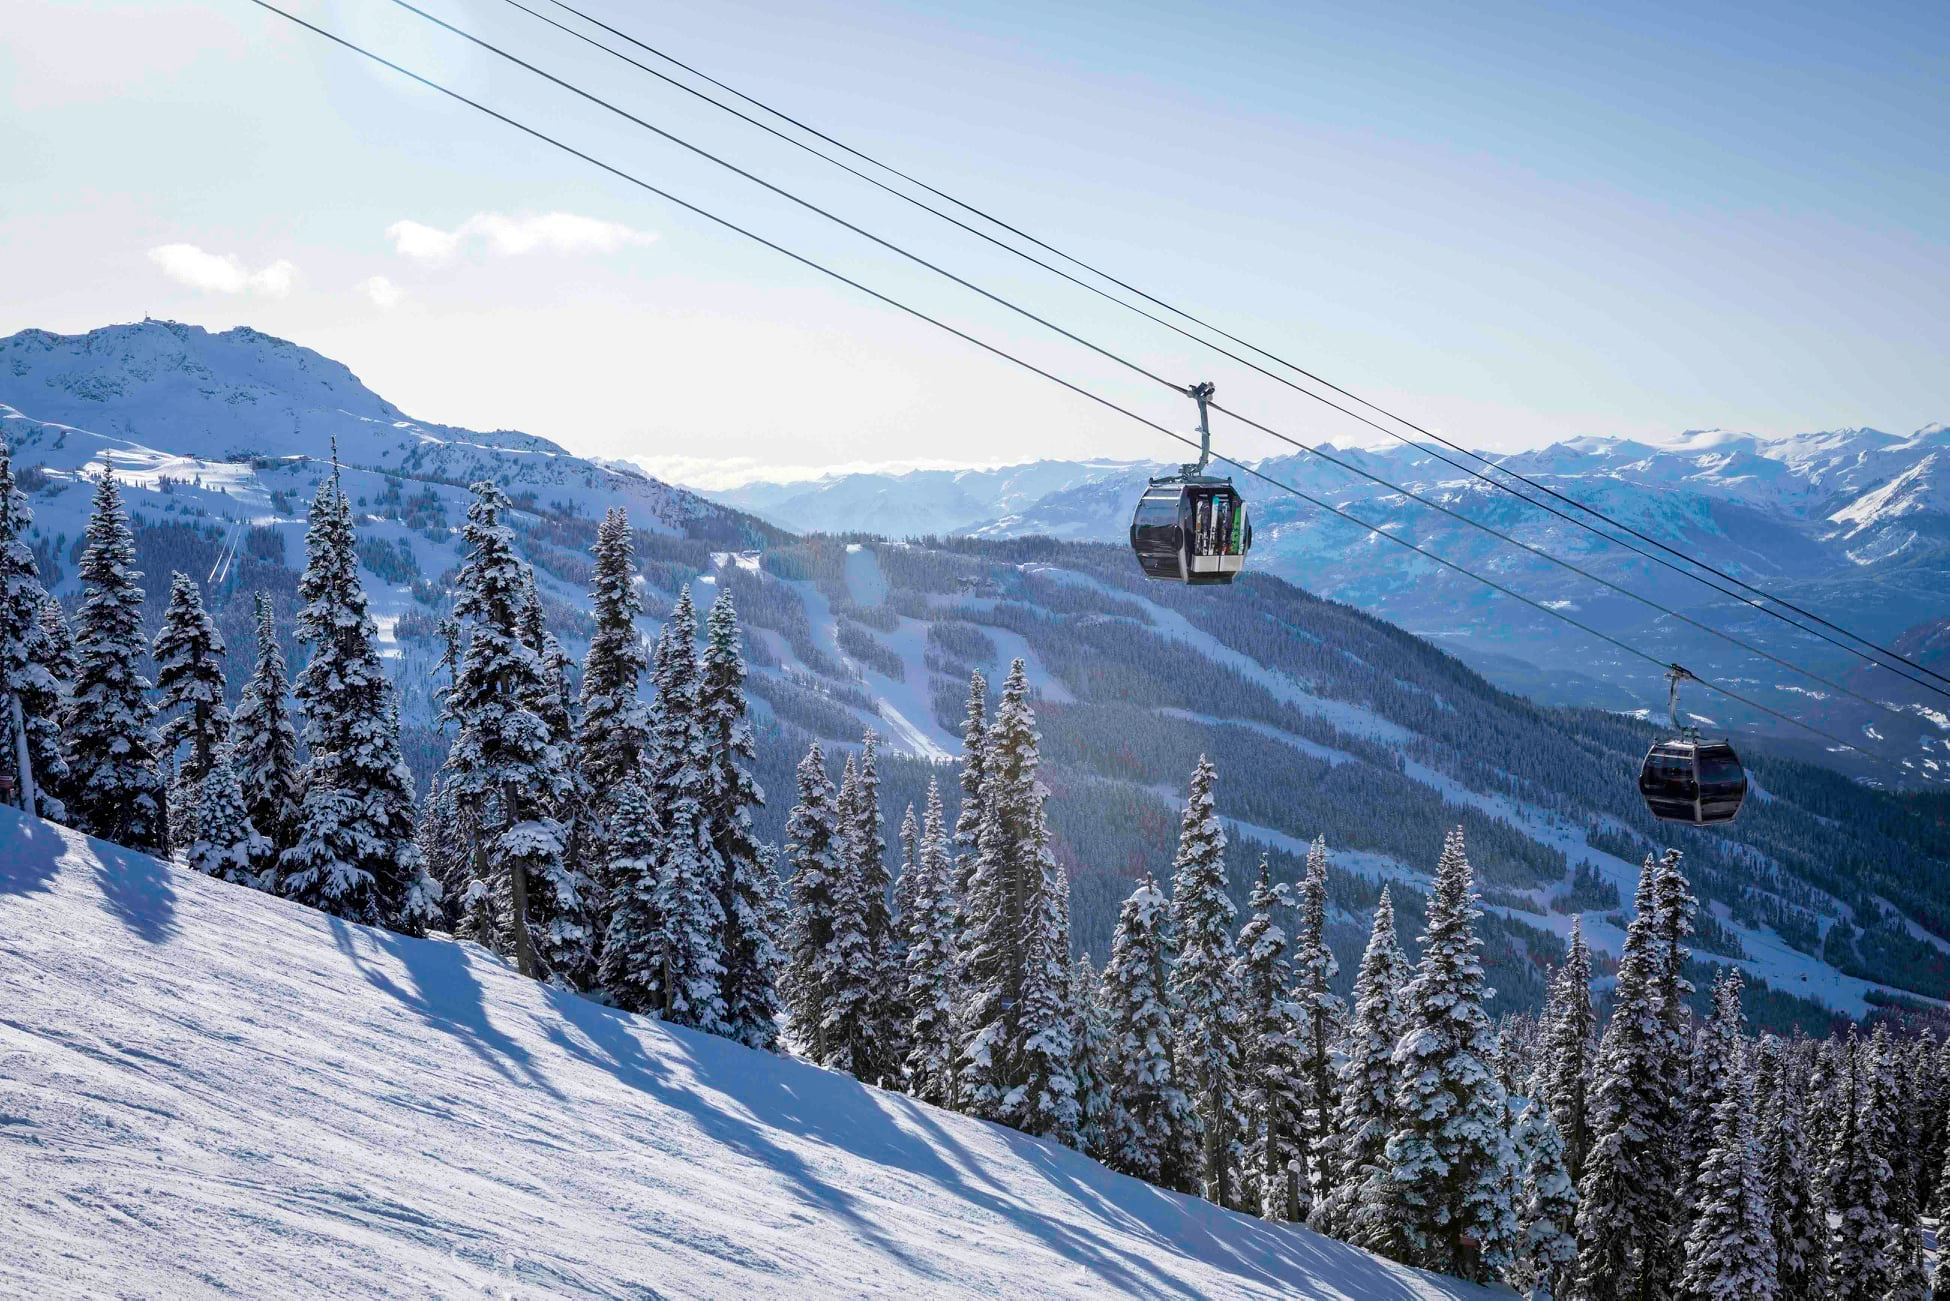 303 Magazine, 303 Outdoor + Travel, Vail Resorts, Colorado Skiing